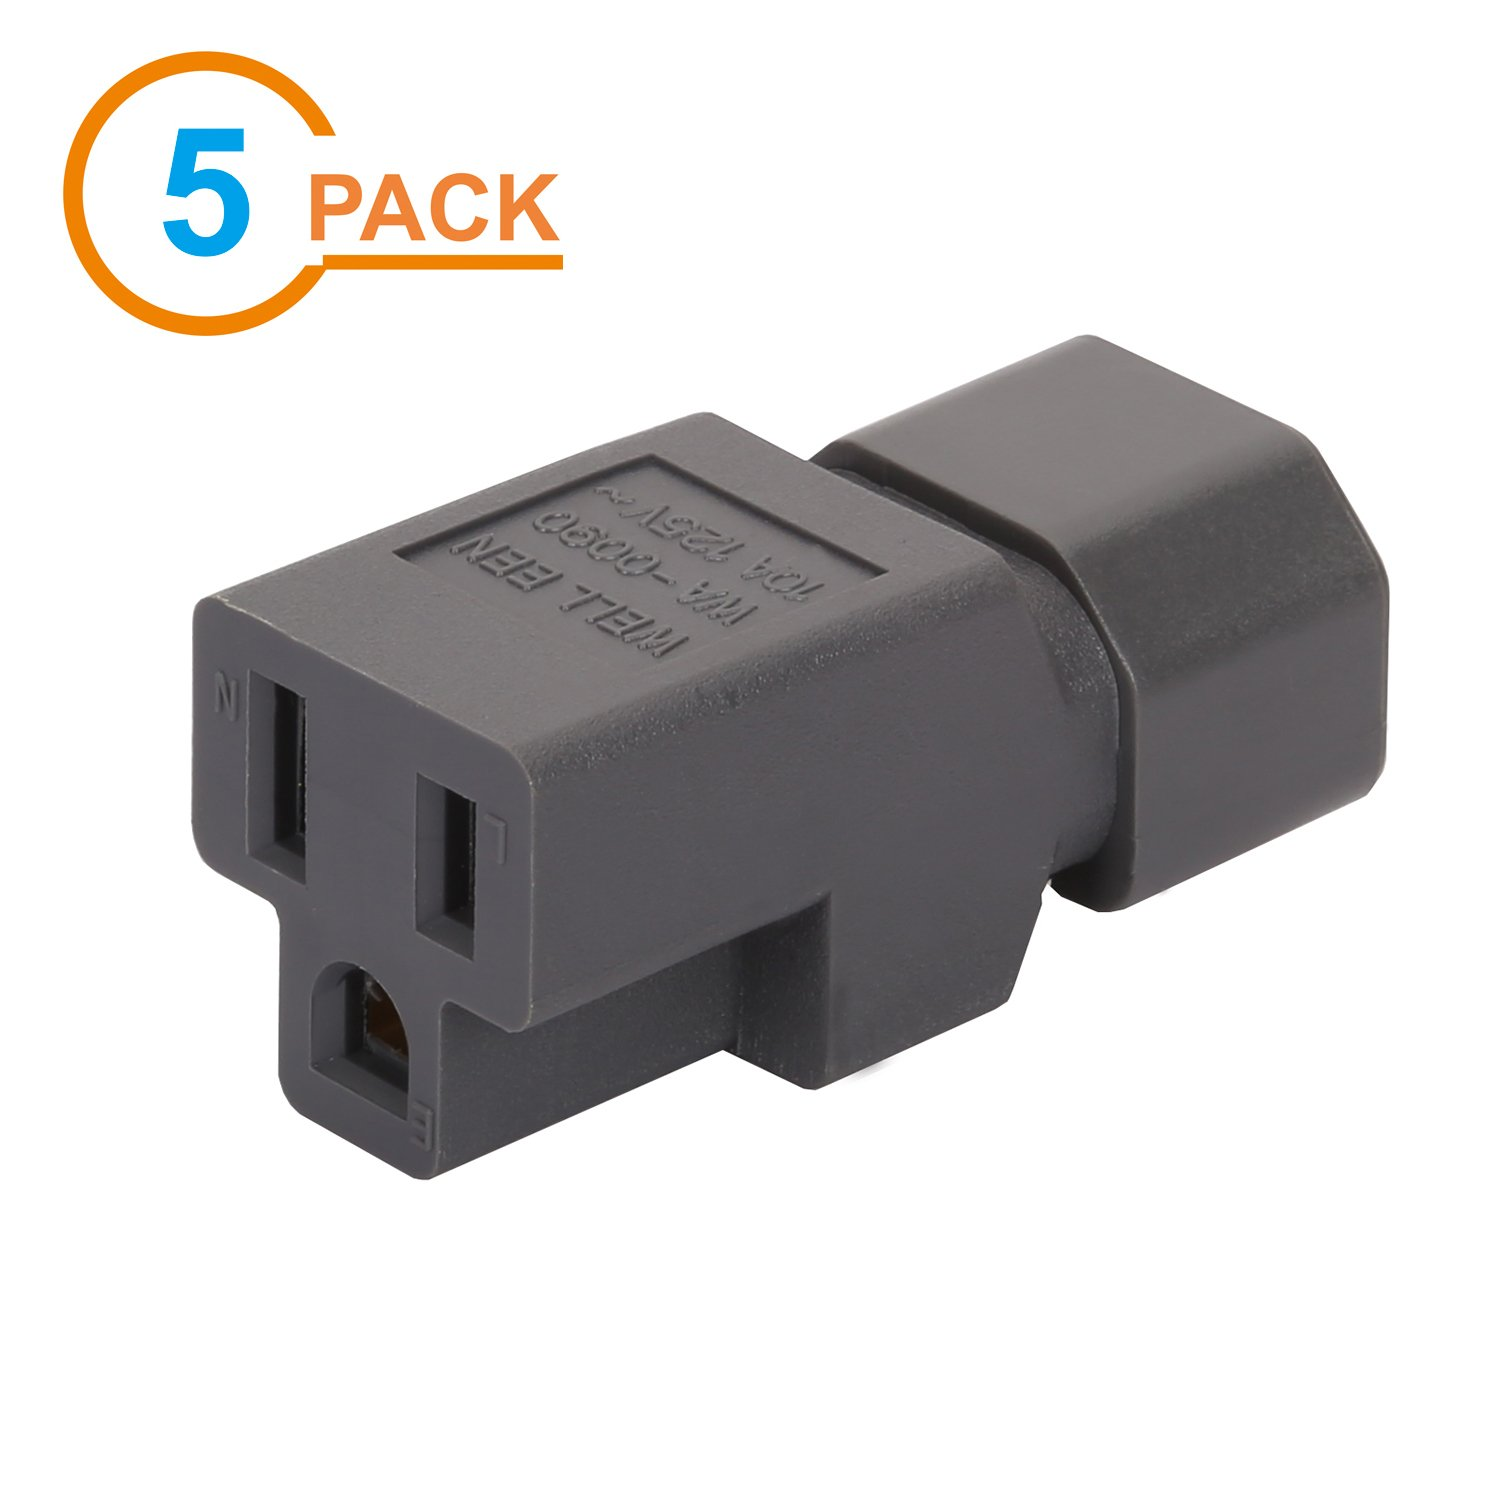 [5Pack] Gray Color IEC 320 C14 to Nema 5-15R AC Adapter, Vellcon C14 to 5-15R USA 3Pole Power Adapter, IEC 3Pole Male to USA 3Pole Female AC Converter, Gray Color